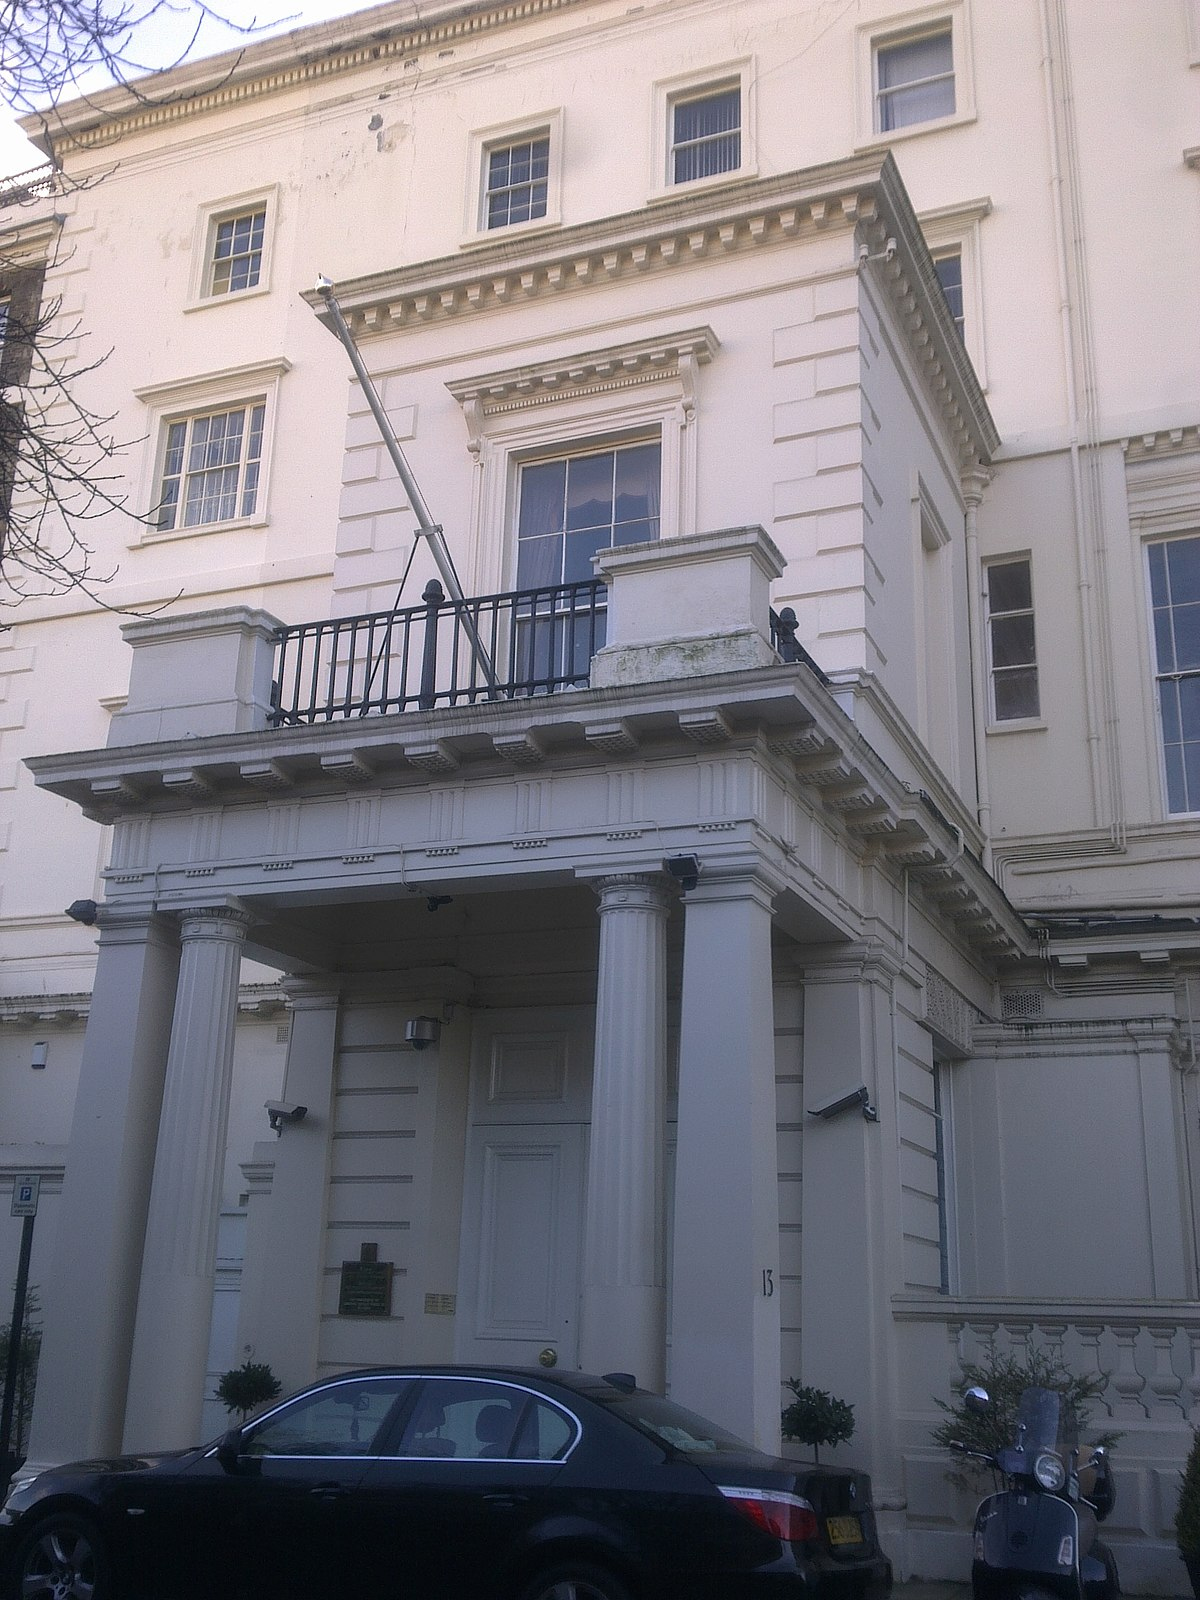 High Commission Of Sri Lanka London Wikipedia